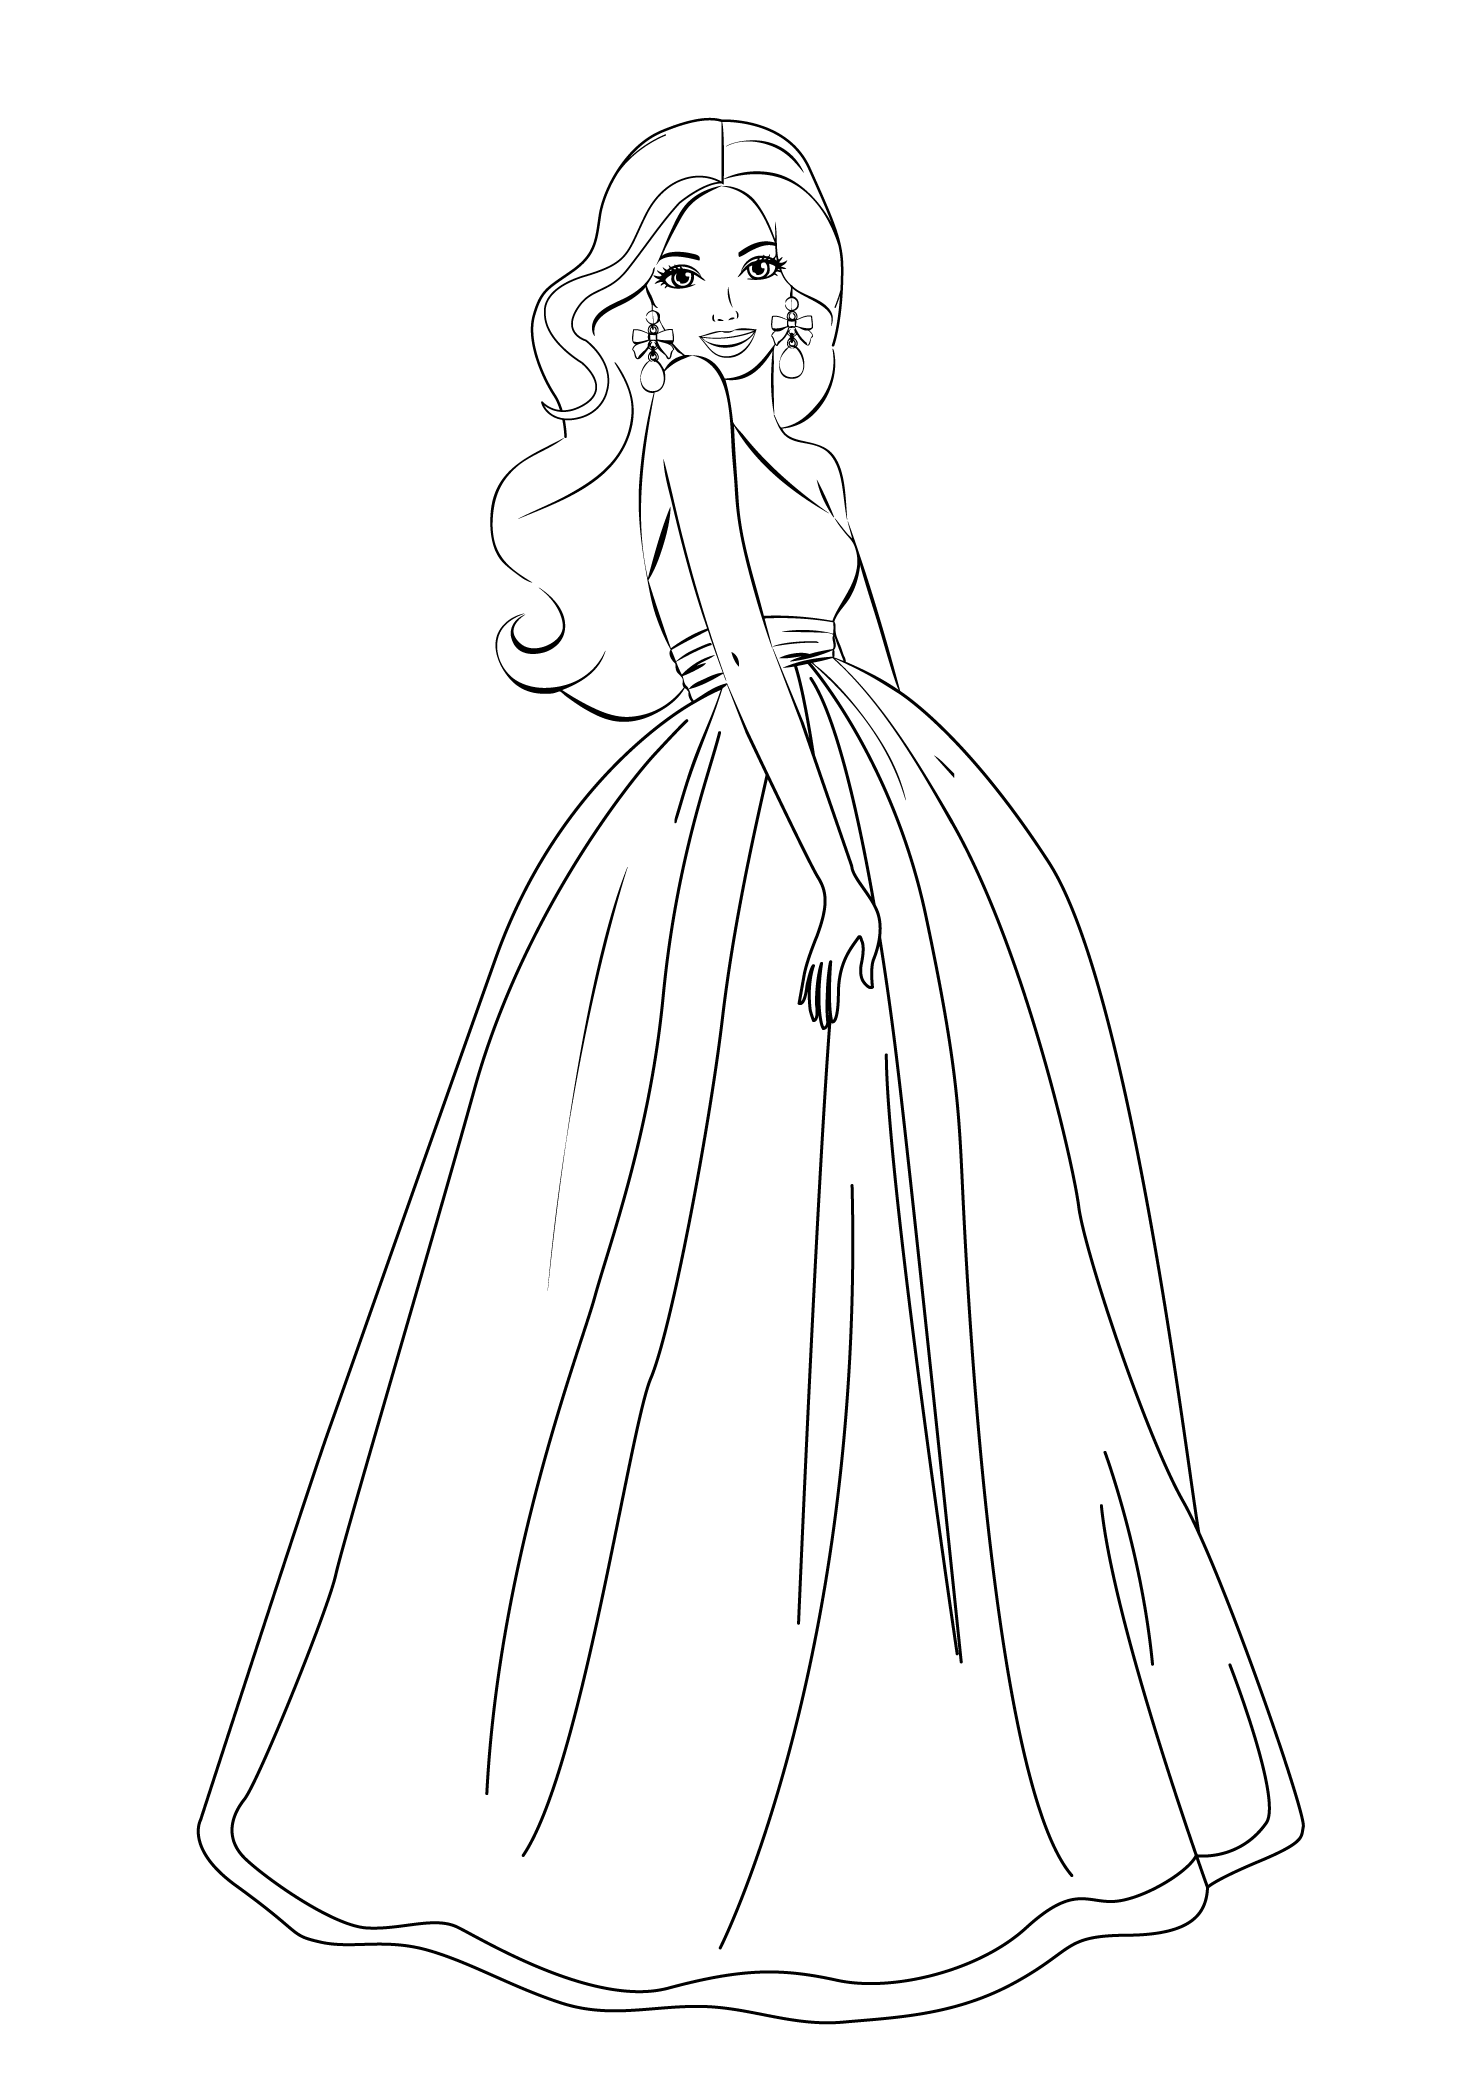 pictures of barbie for colouring printable barbie princess coloring pages for kids cool2bkids pictures for colouring barbie of